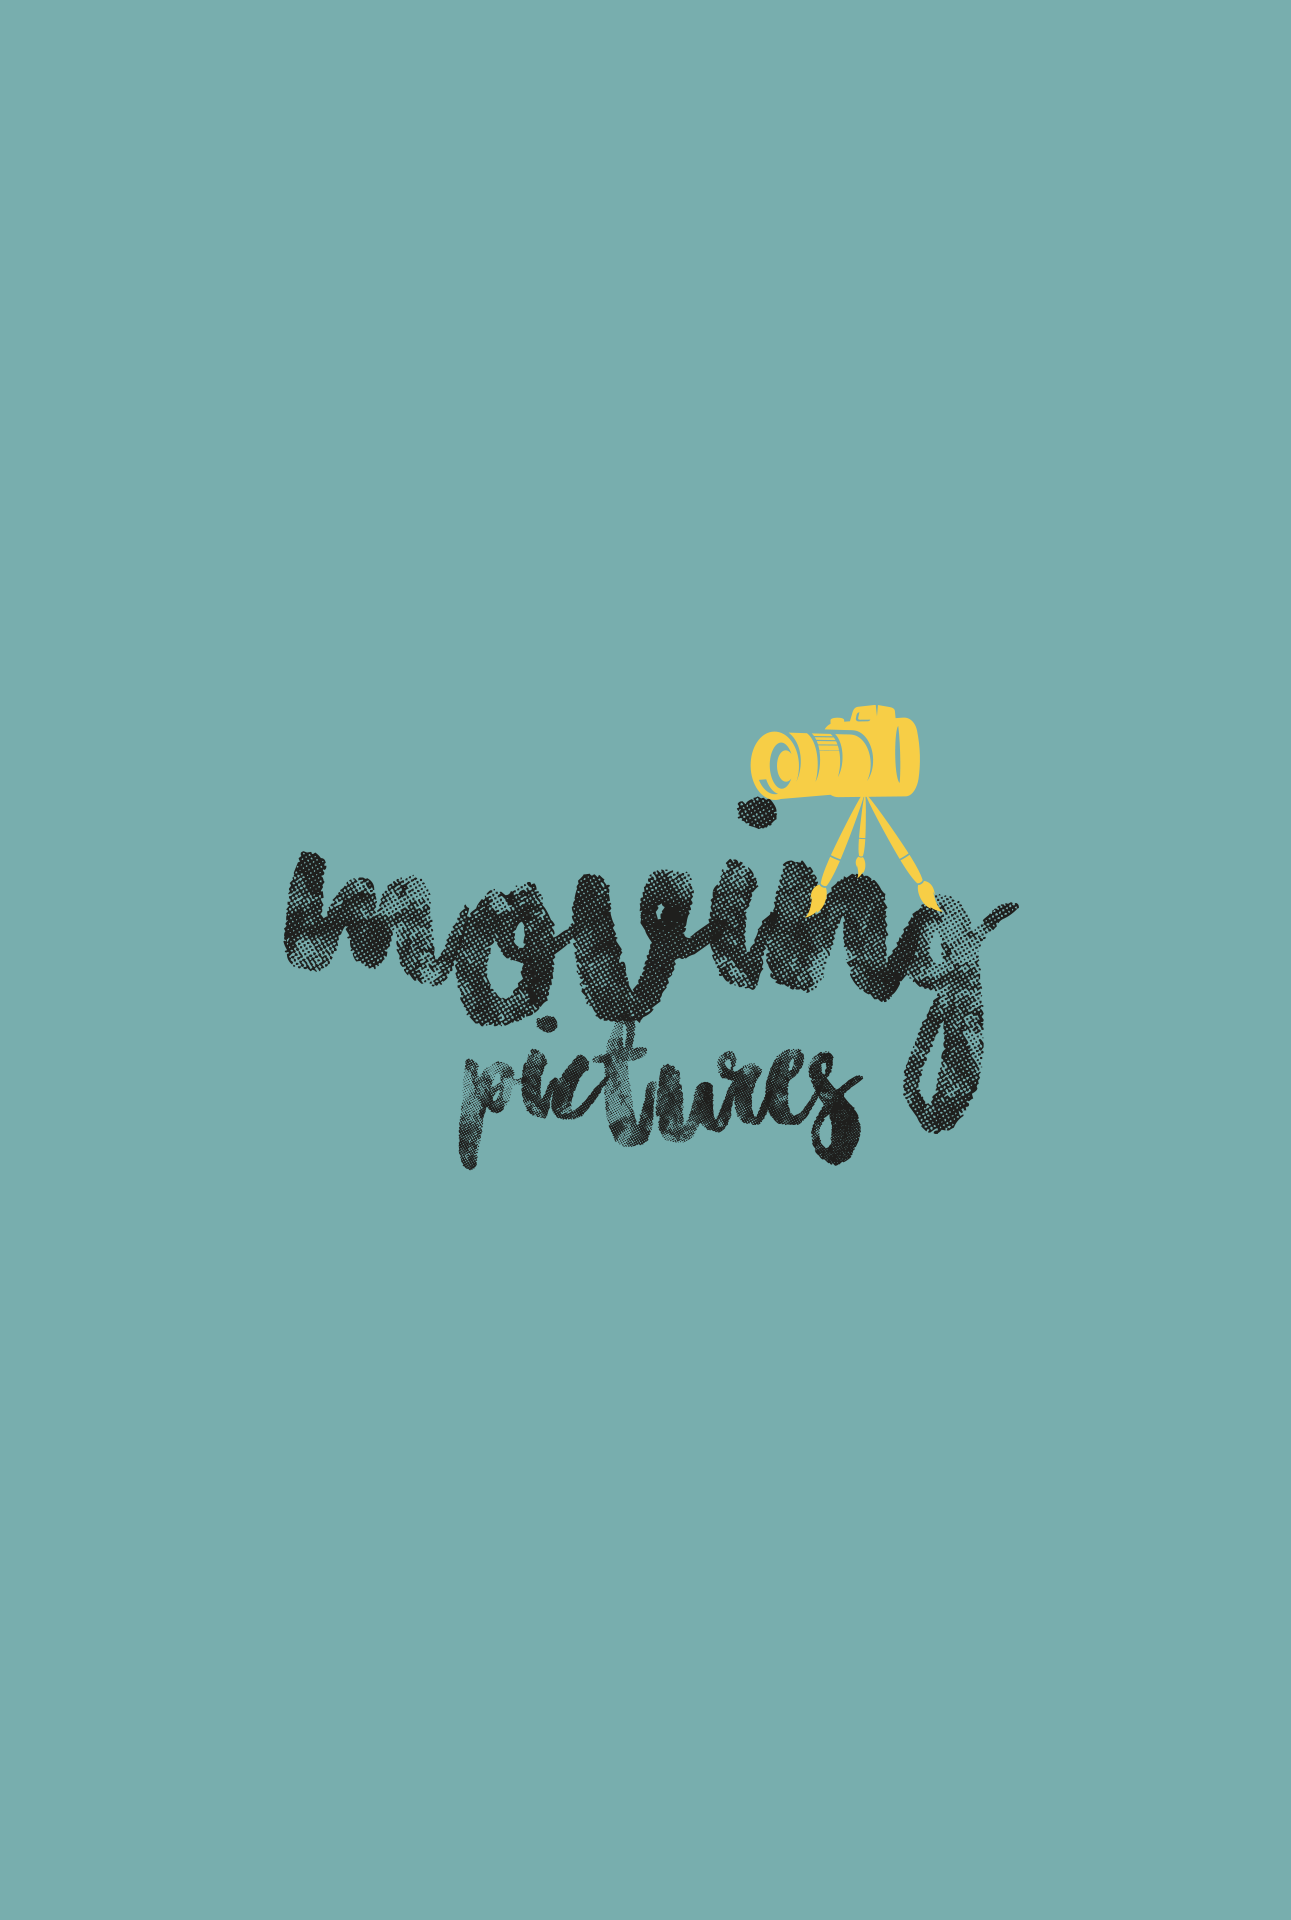 Moving Pictures Brand Identity